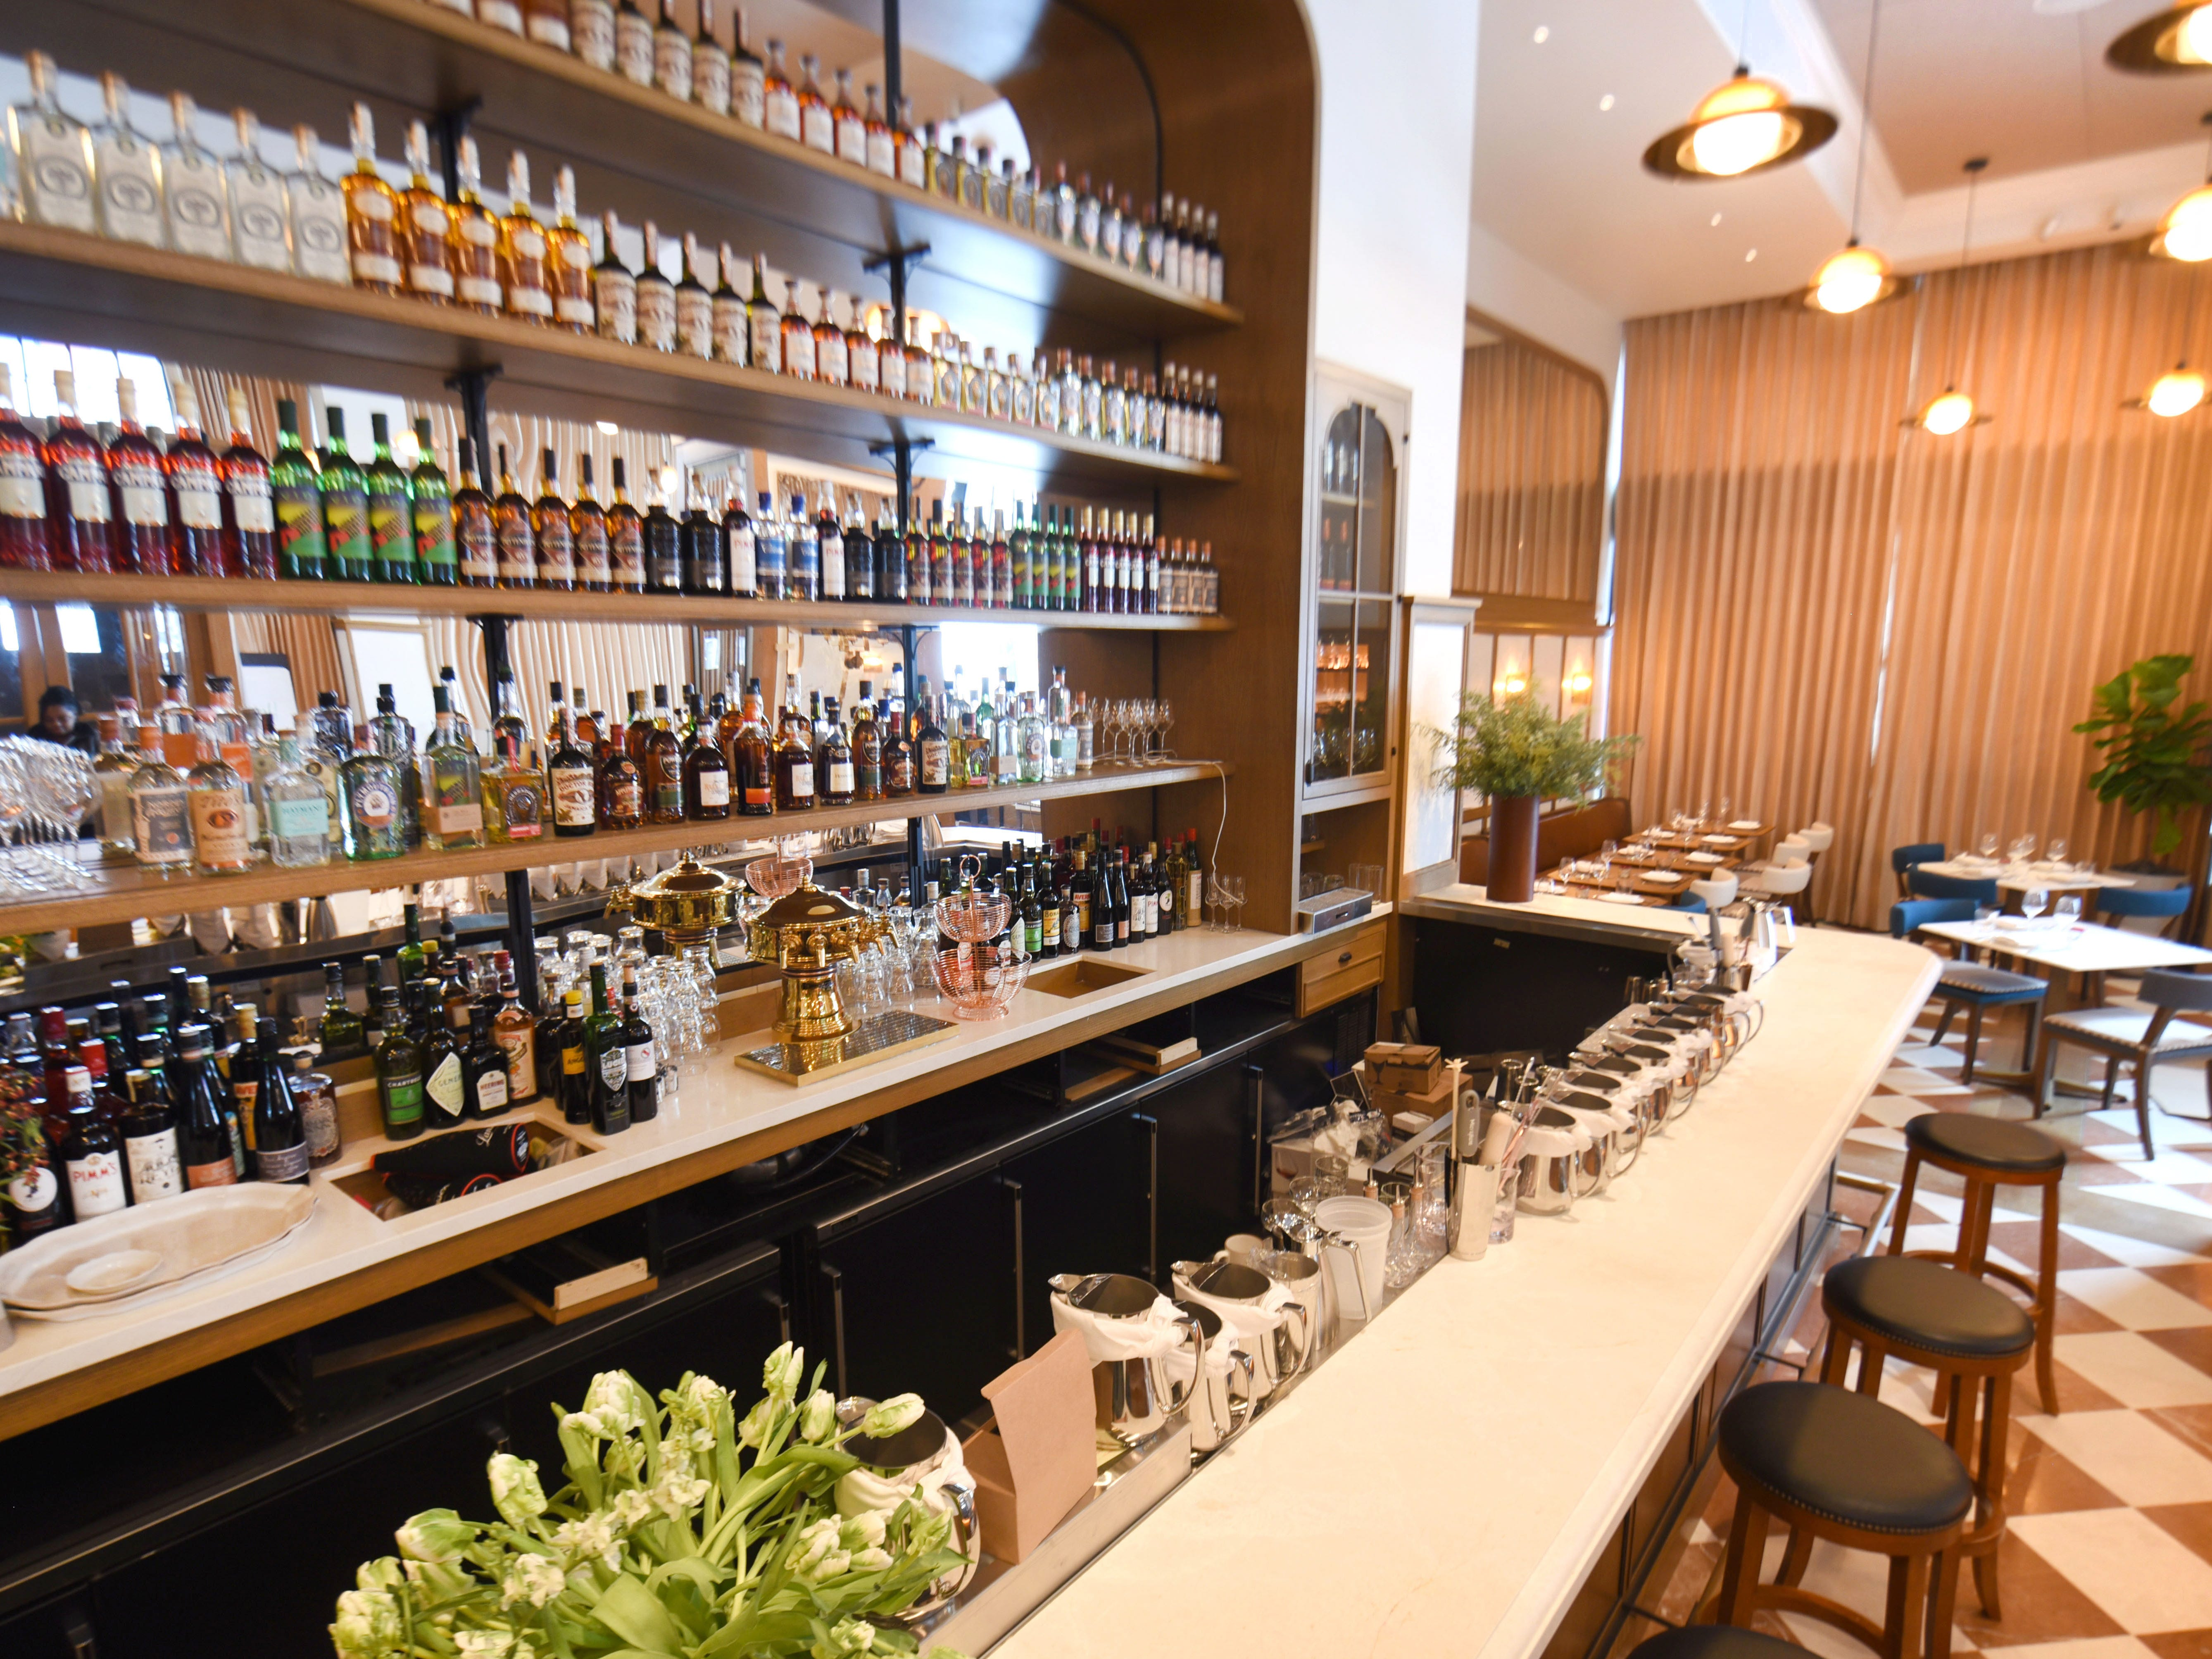 The bar and lounge at the San Morello restaurant inside the Shinola Hotel.